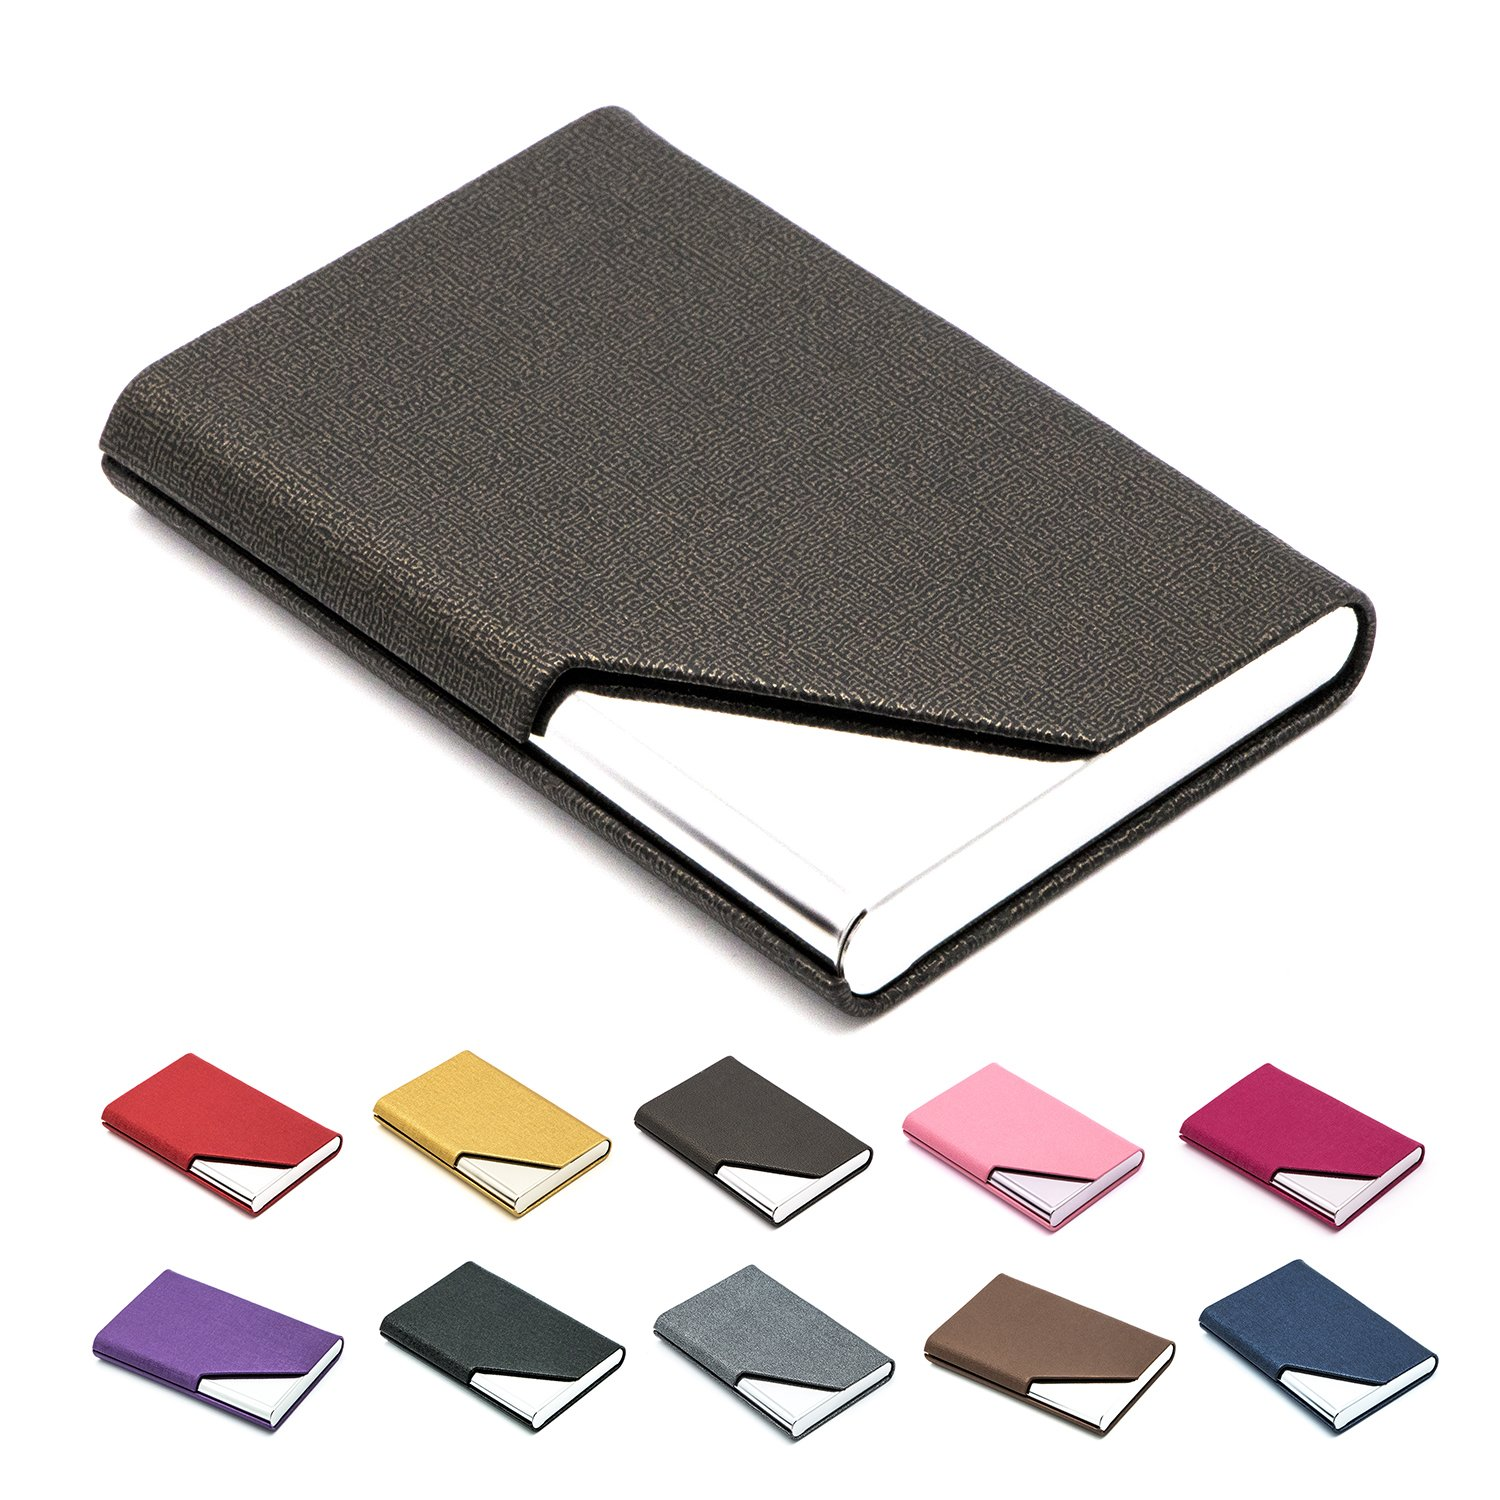 Business Name Card Holder Luxury PU Leather & Stainless Steel Multi Card Case,Business Name Card Holder Wallet Credit Card ID Case/Holder for Men & Women - Keep Your Business Cards Clean (Gray) ¡­ padike